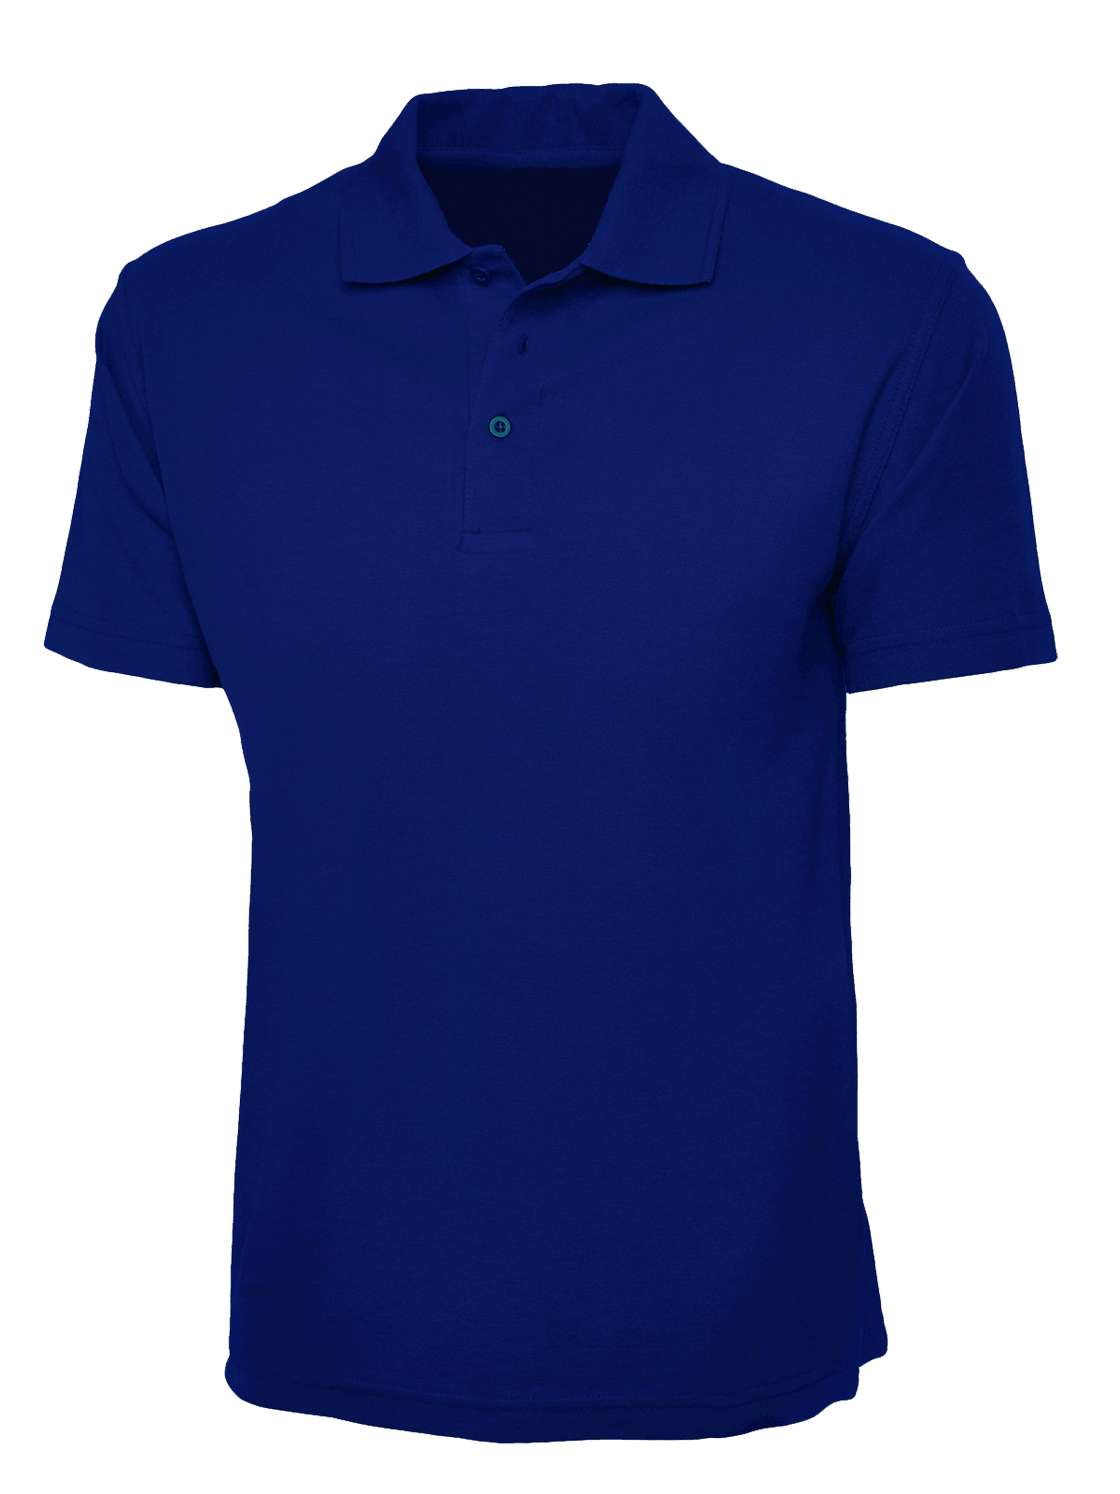 Show off in classic men's solid polo shirts from Bealls Florida. Always versatile, men's solid polo shirts are perfect for workdays or weekends. mens blue golf polo shirt. white golf polo top. white spandex polo shirt. Related Products. Alabama Mens Perfect Cast Polo Shirt By Columbia.